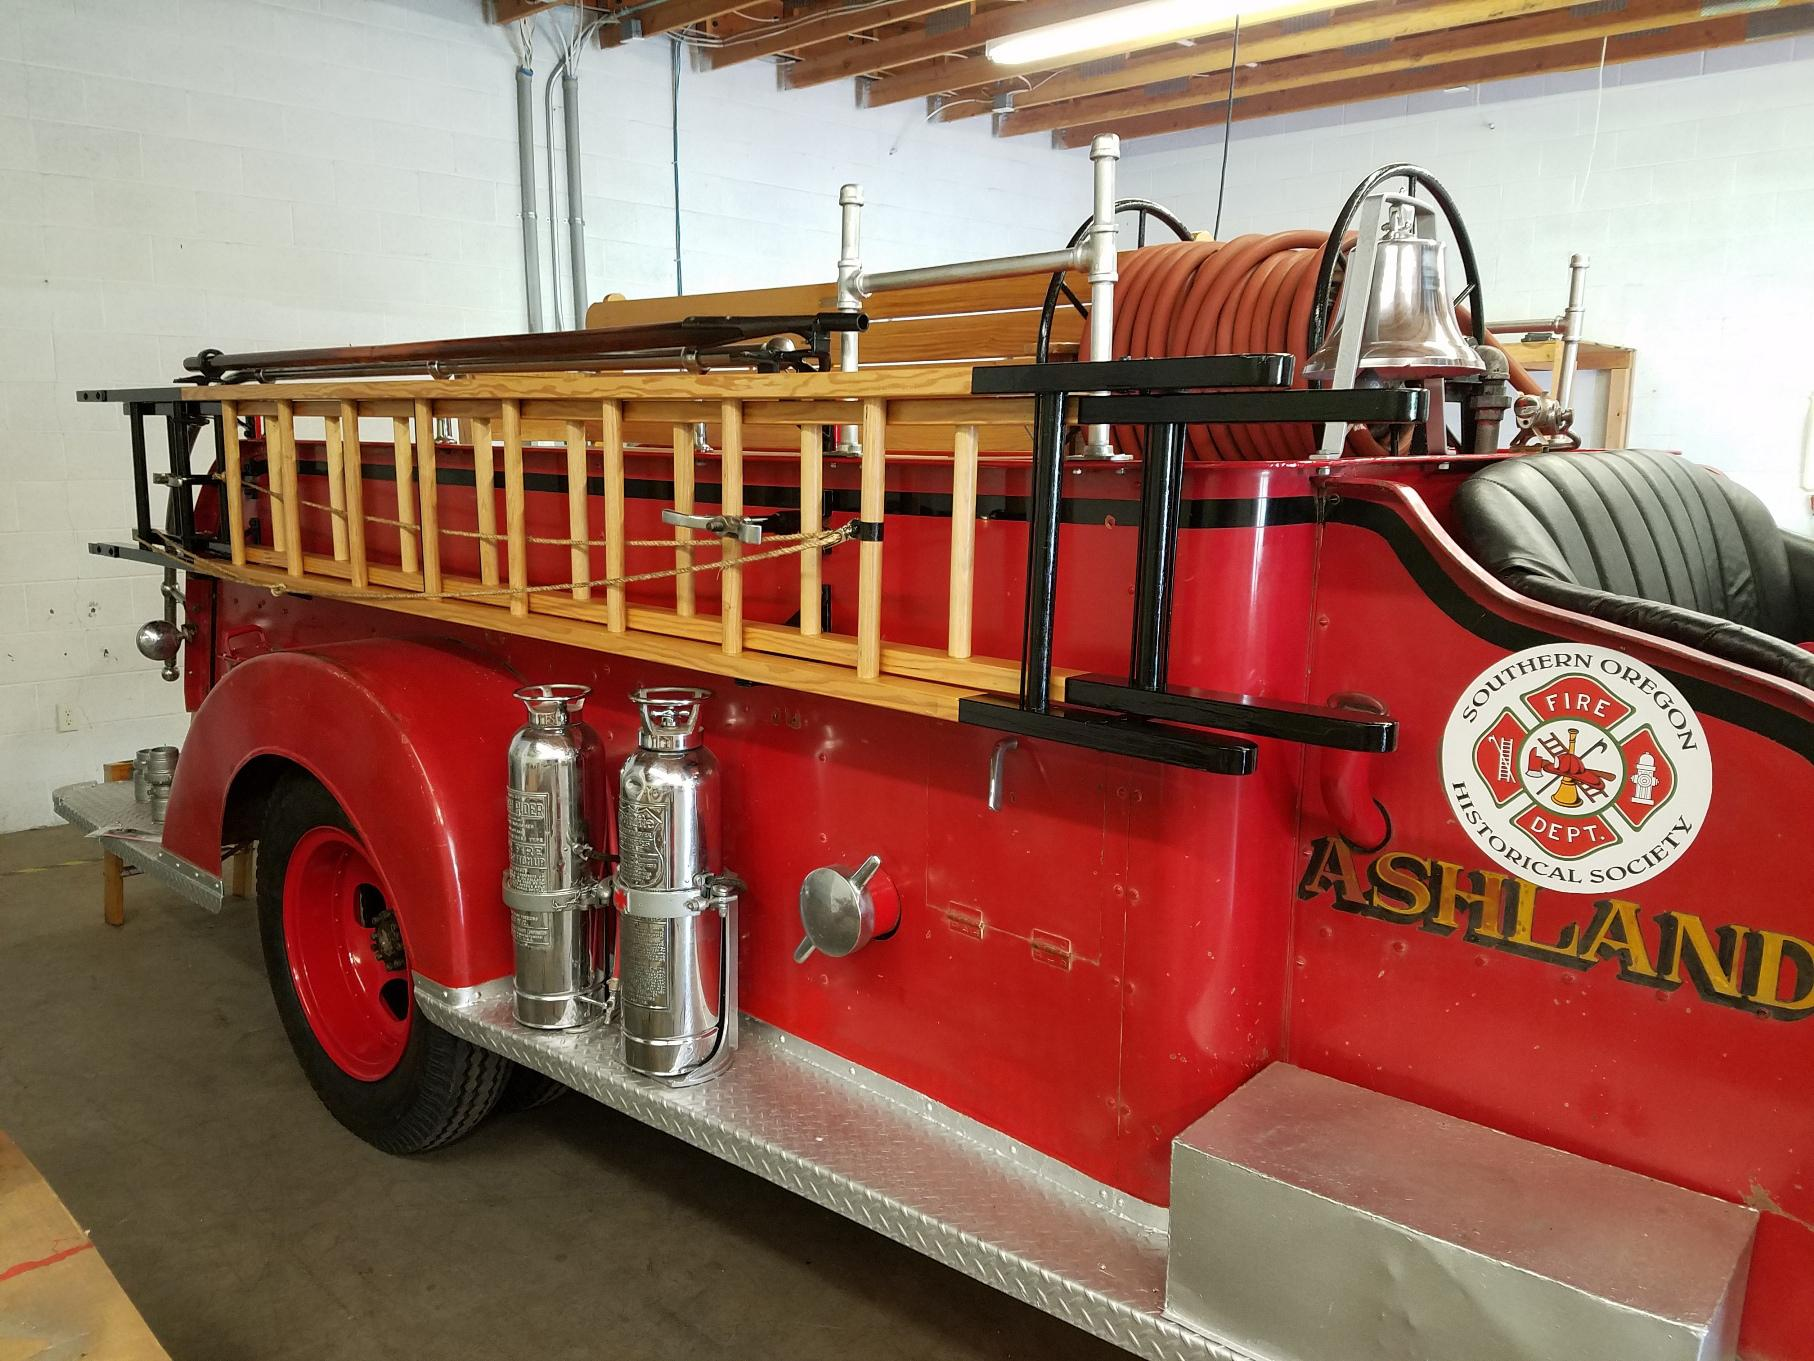 Ashland's 1946 Ford Fire Truck, now completely restored by Southern Oregon Historical Society volunteers. (Photo courtesy of SOHS)